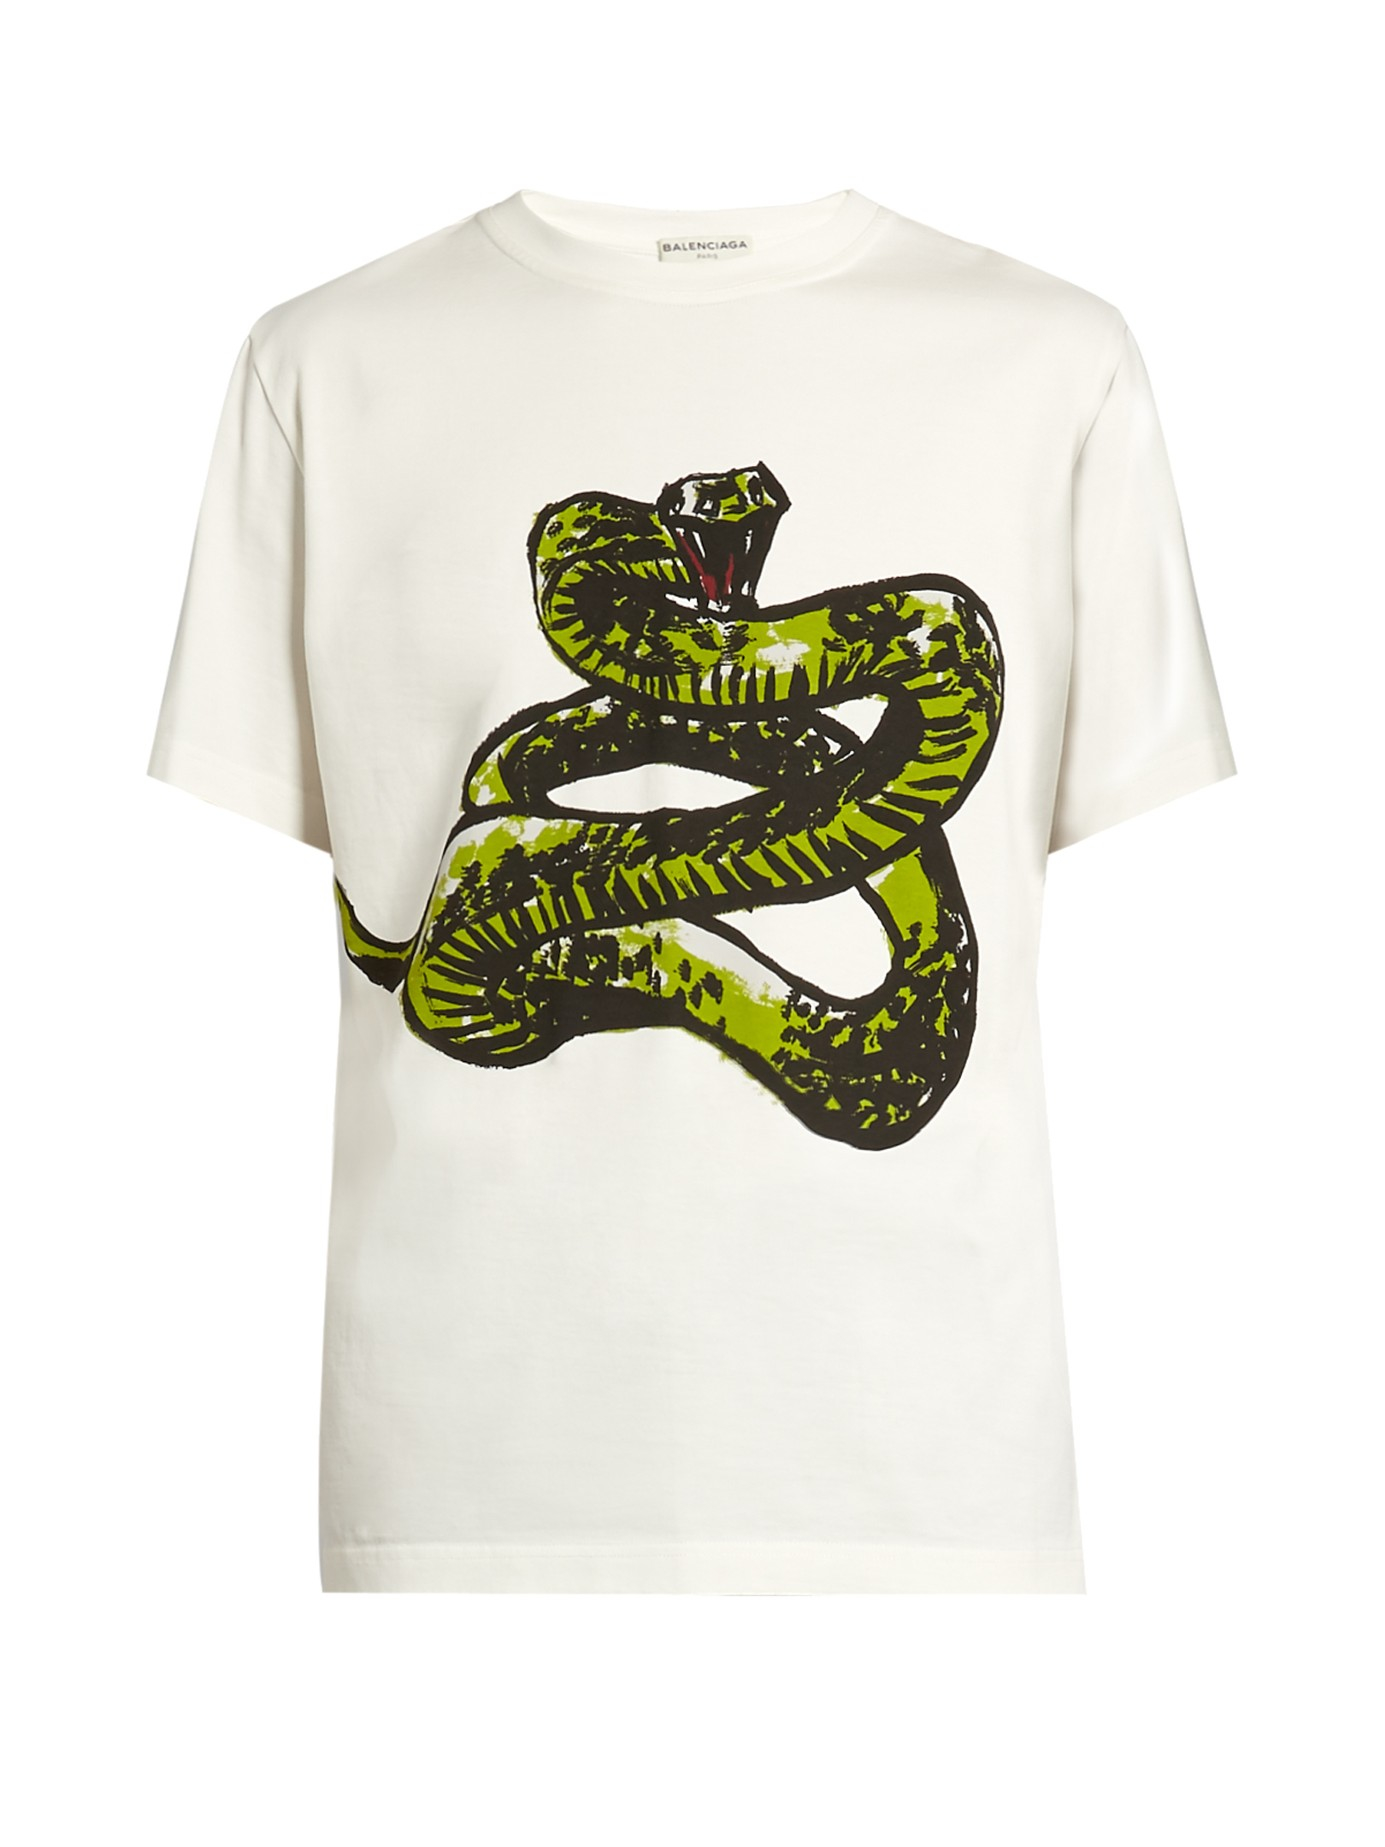 723debef23bc Balenciaga Snake-print Cotton-jersey T-shirt in White for Men - Lyst